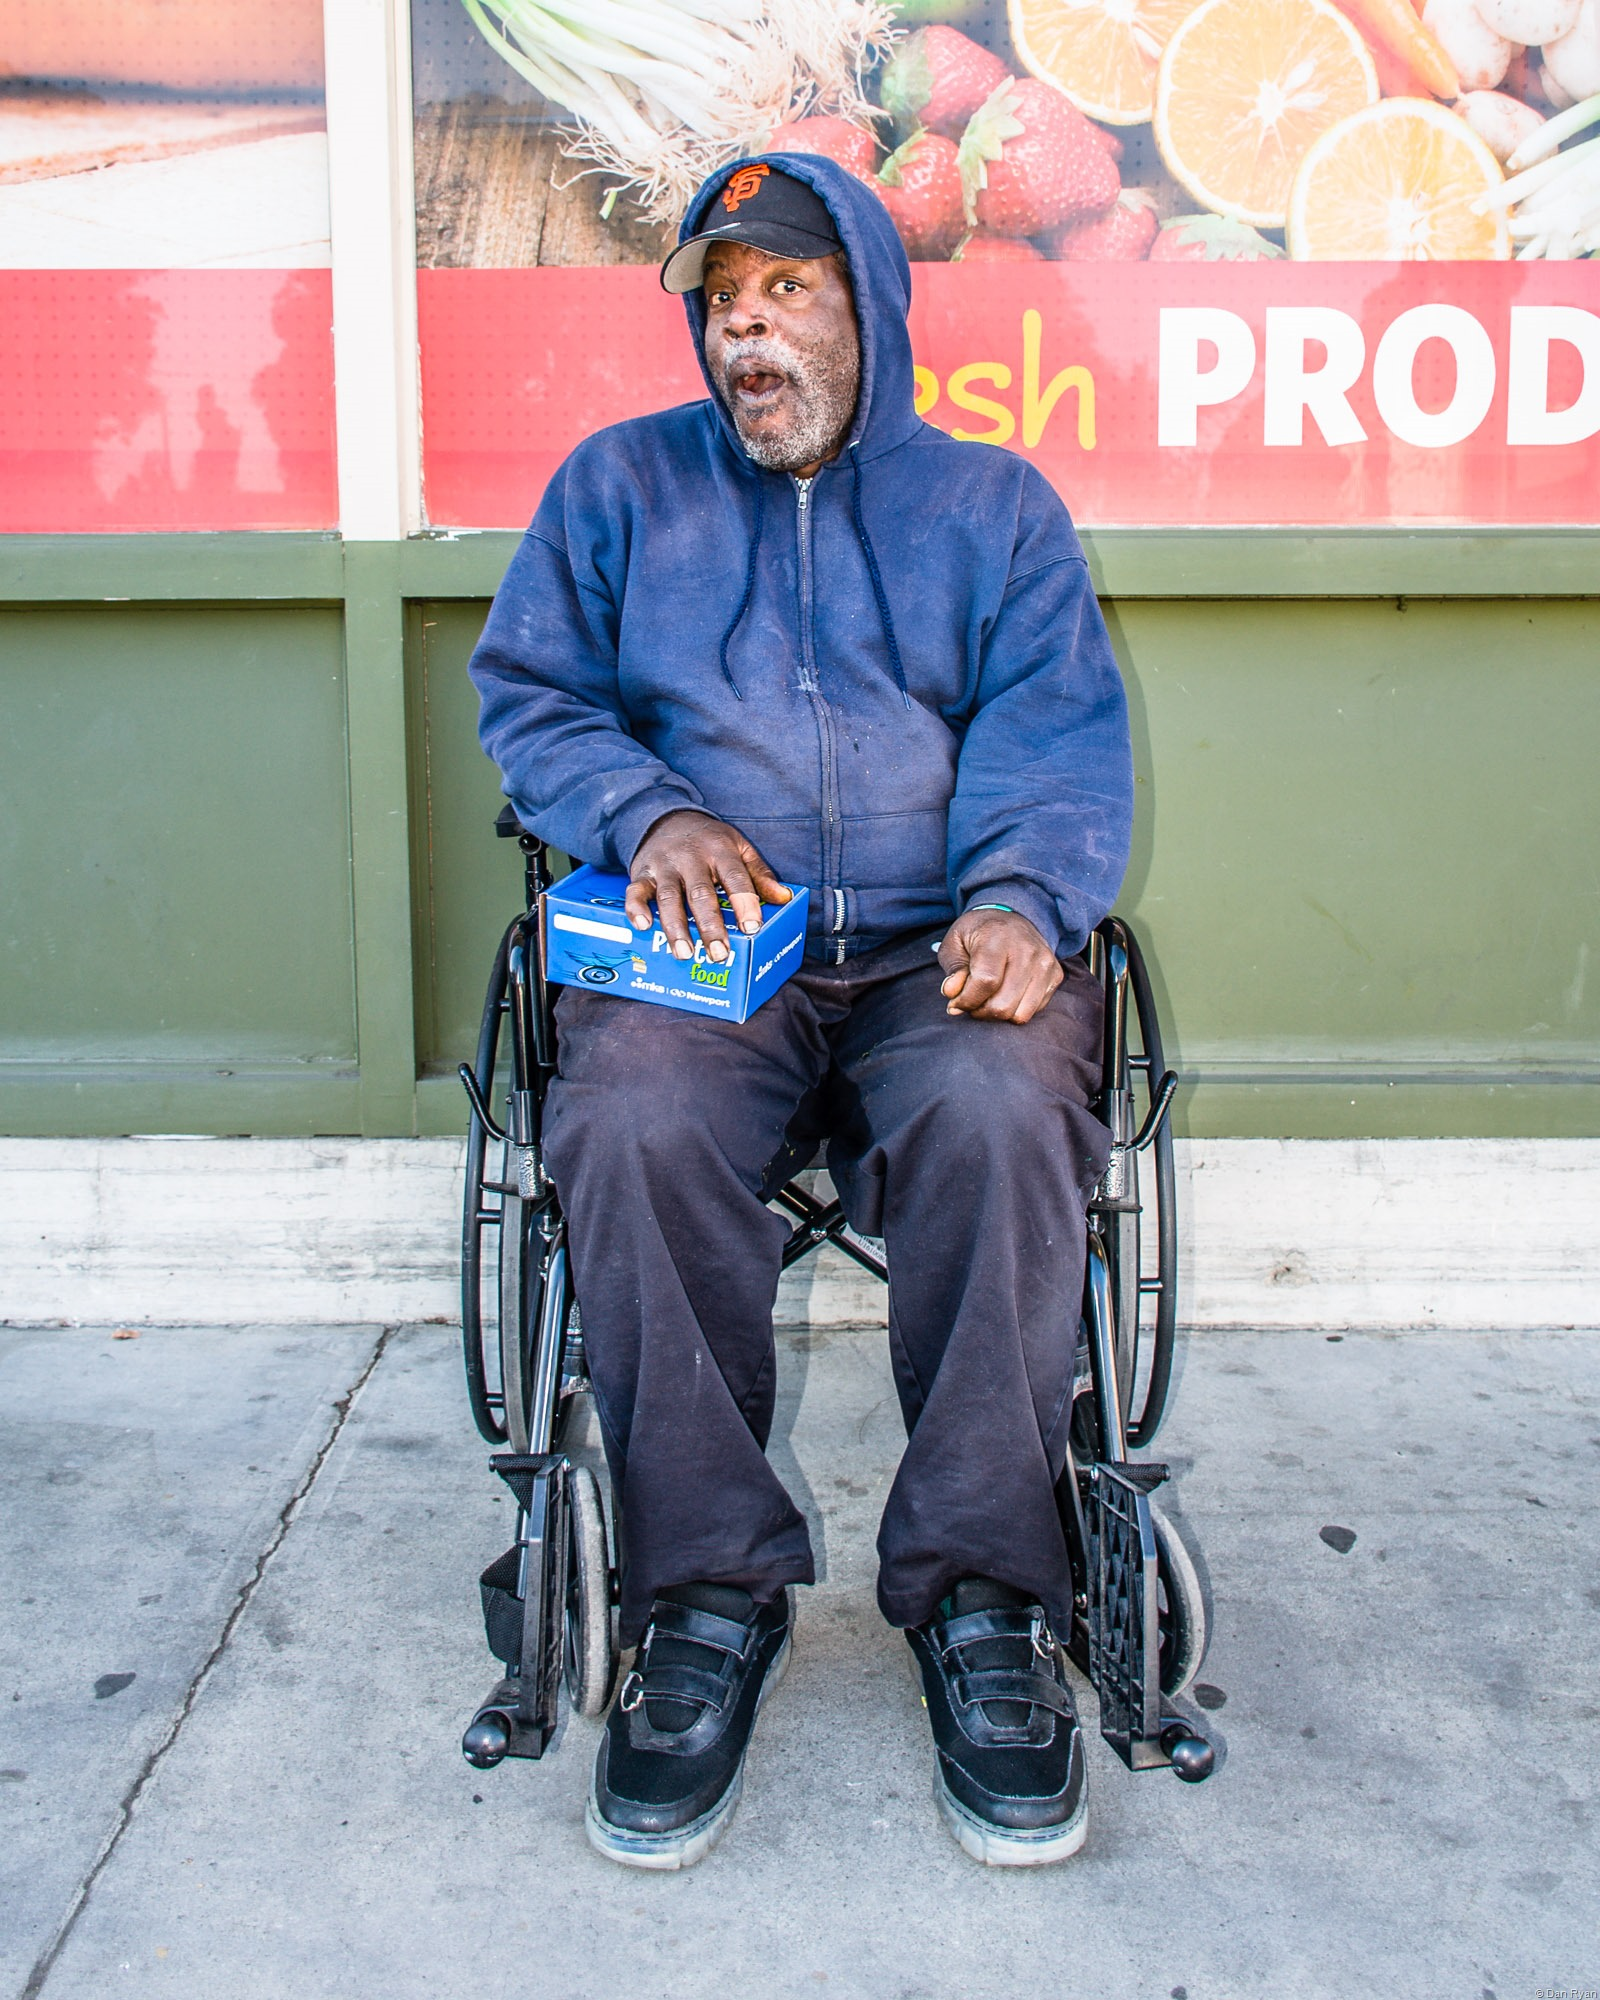 Homeless man in wheel chair at a grocery store